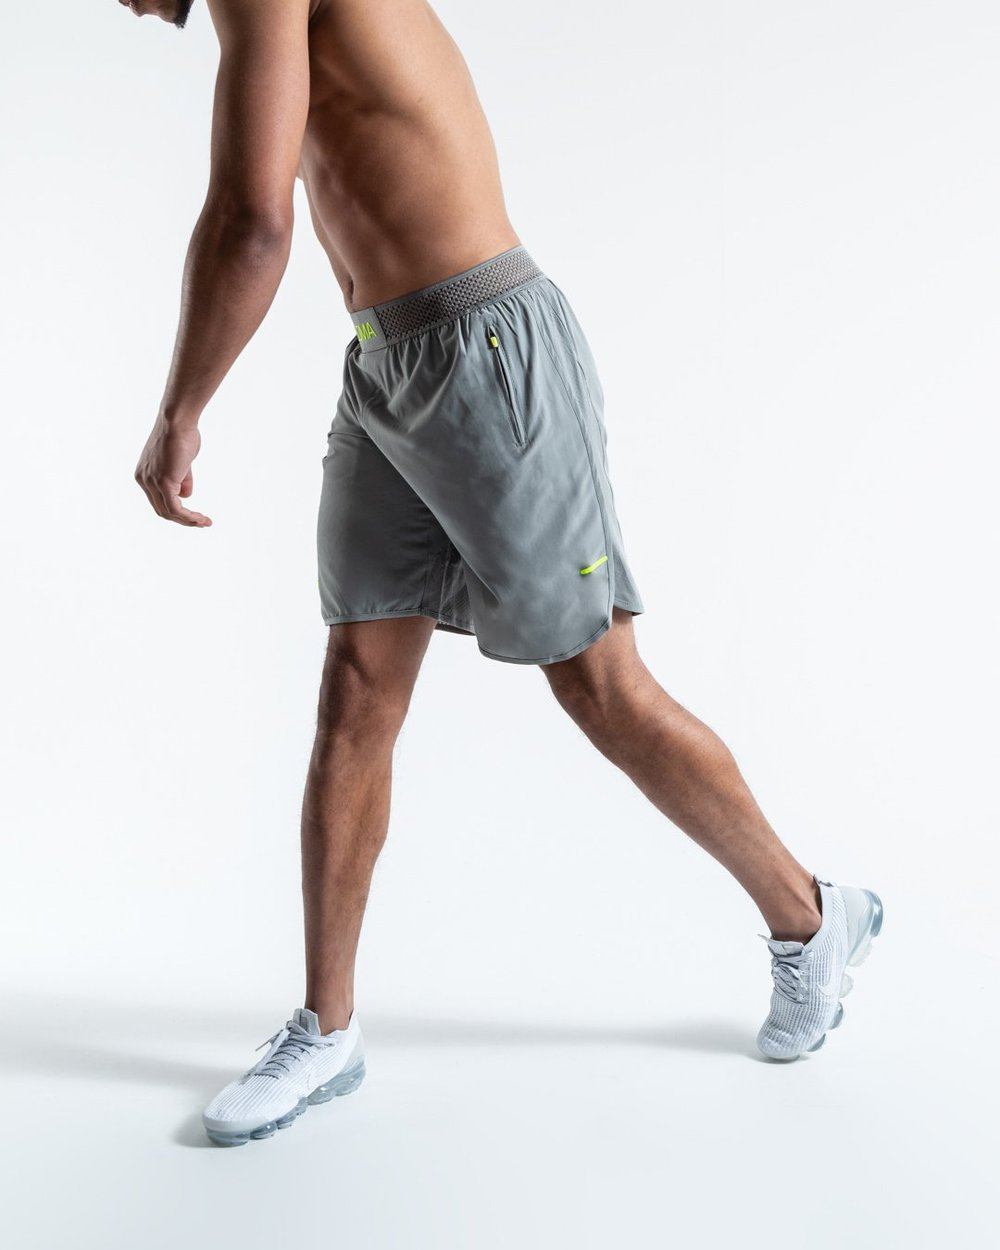 LOMA SHORTS - GREY - Pandemic Fight Gear Inc.